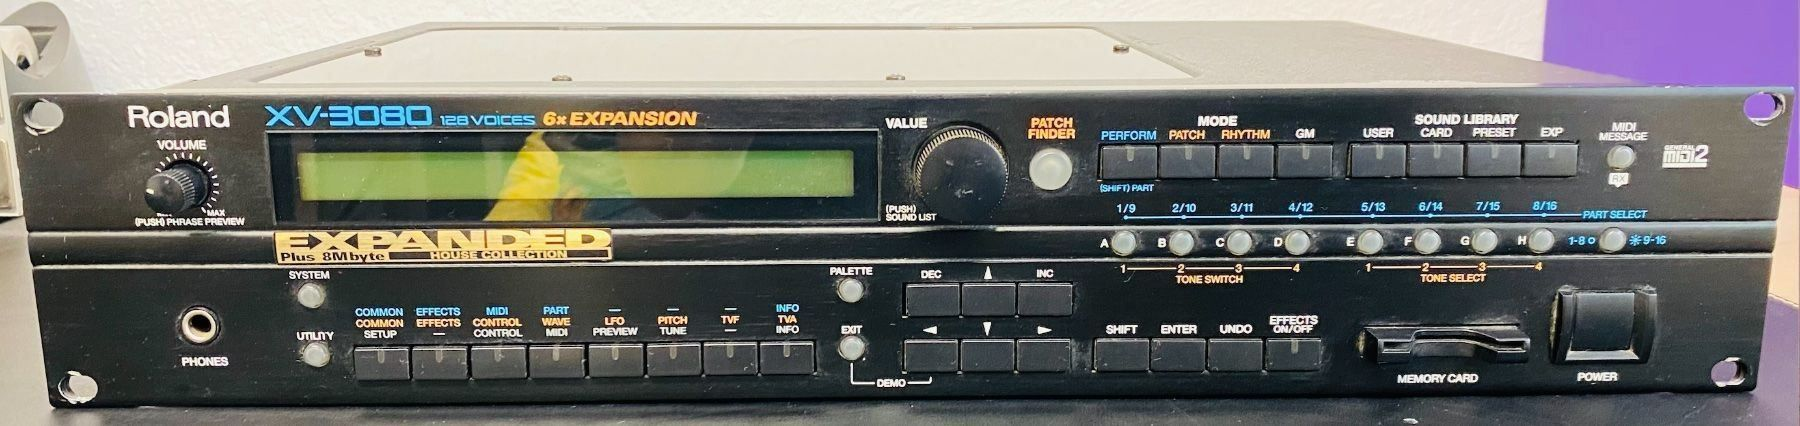 Roland XV-3080 inkl. House-ExpansionCard